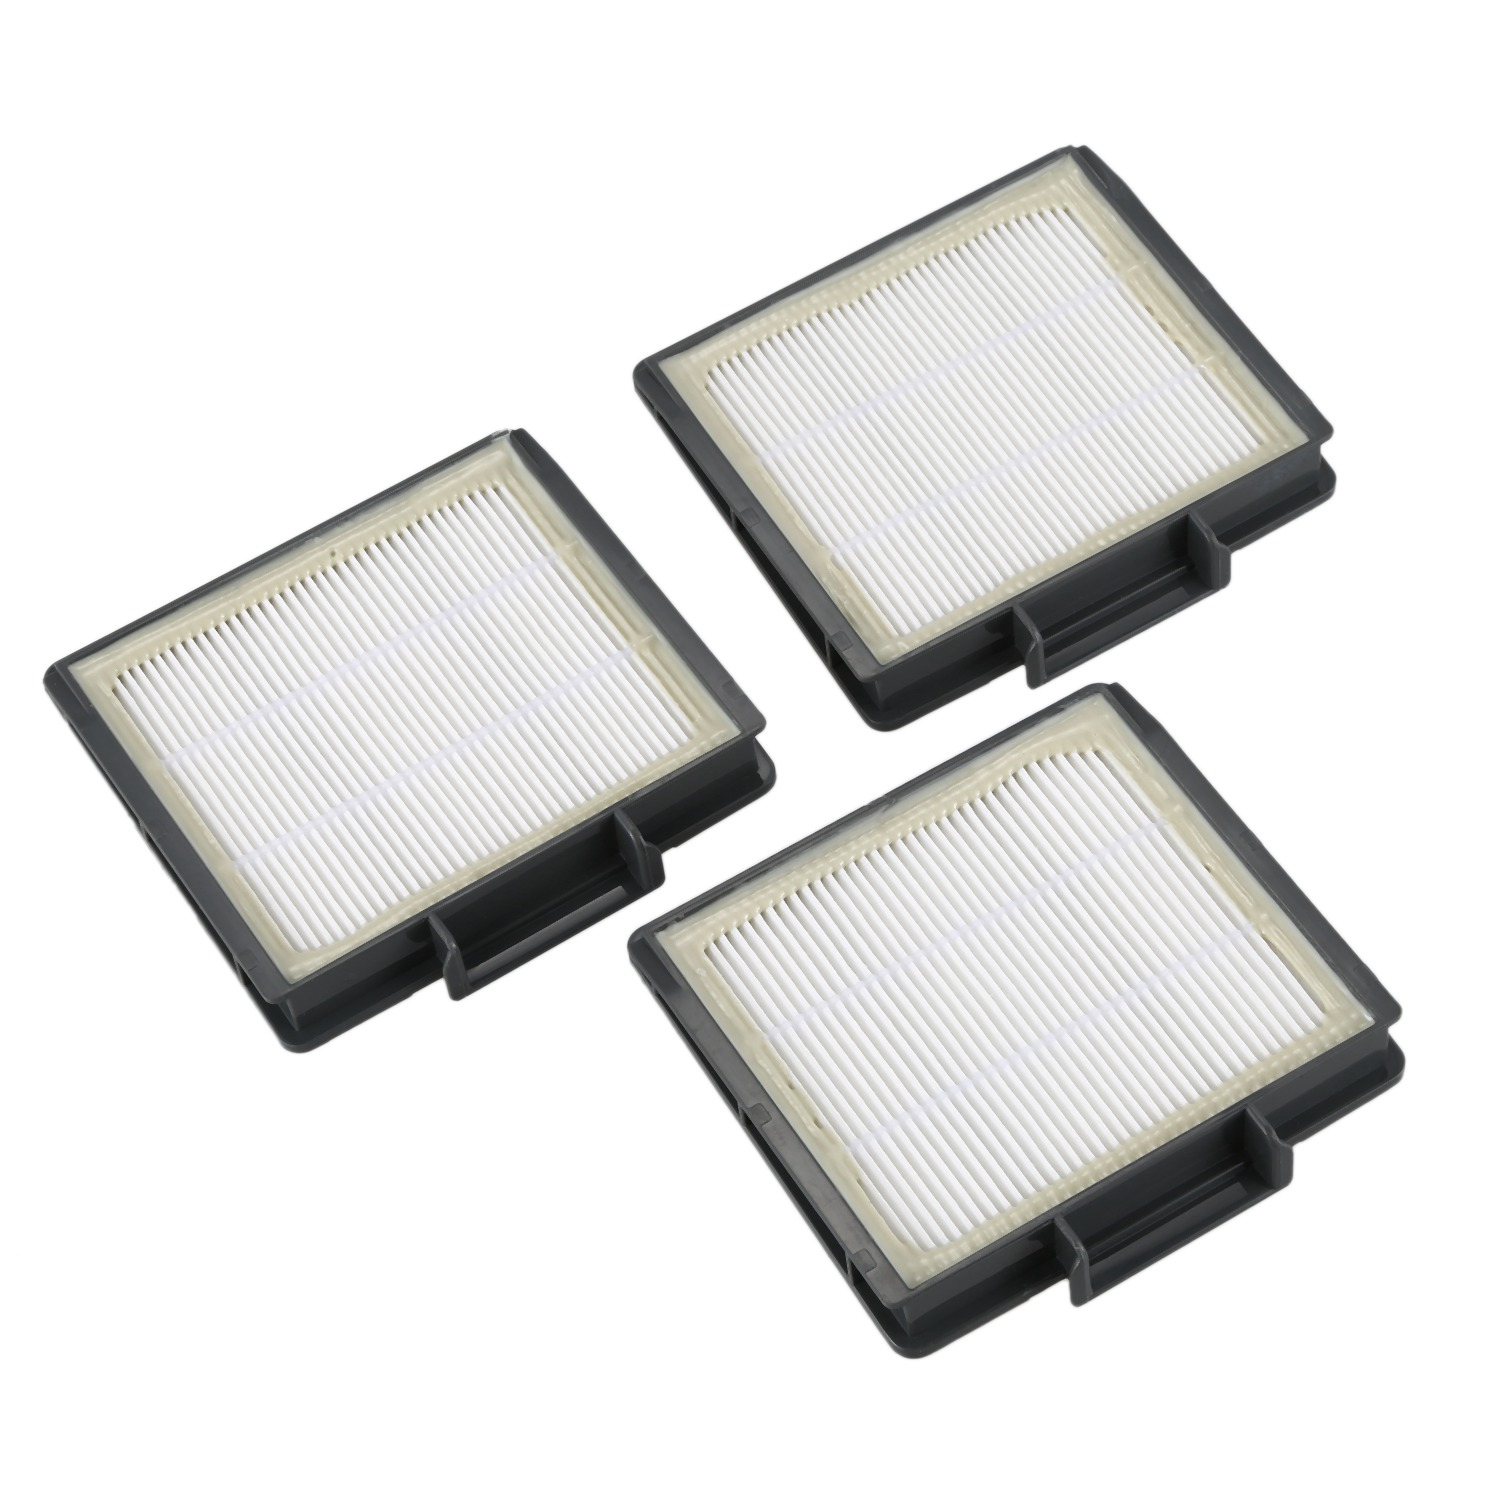 Cleaning Appliance Parts Capable 3pcs Pre-motor Hepa Filters For Shark Ion Robot Rv700_n Rv720_n Rv850 Rv851wv Rv850brn/wv Vacuum Cleaner Part Fit # Rvffk Bracing Up The Whole System And Strengthening It